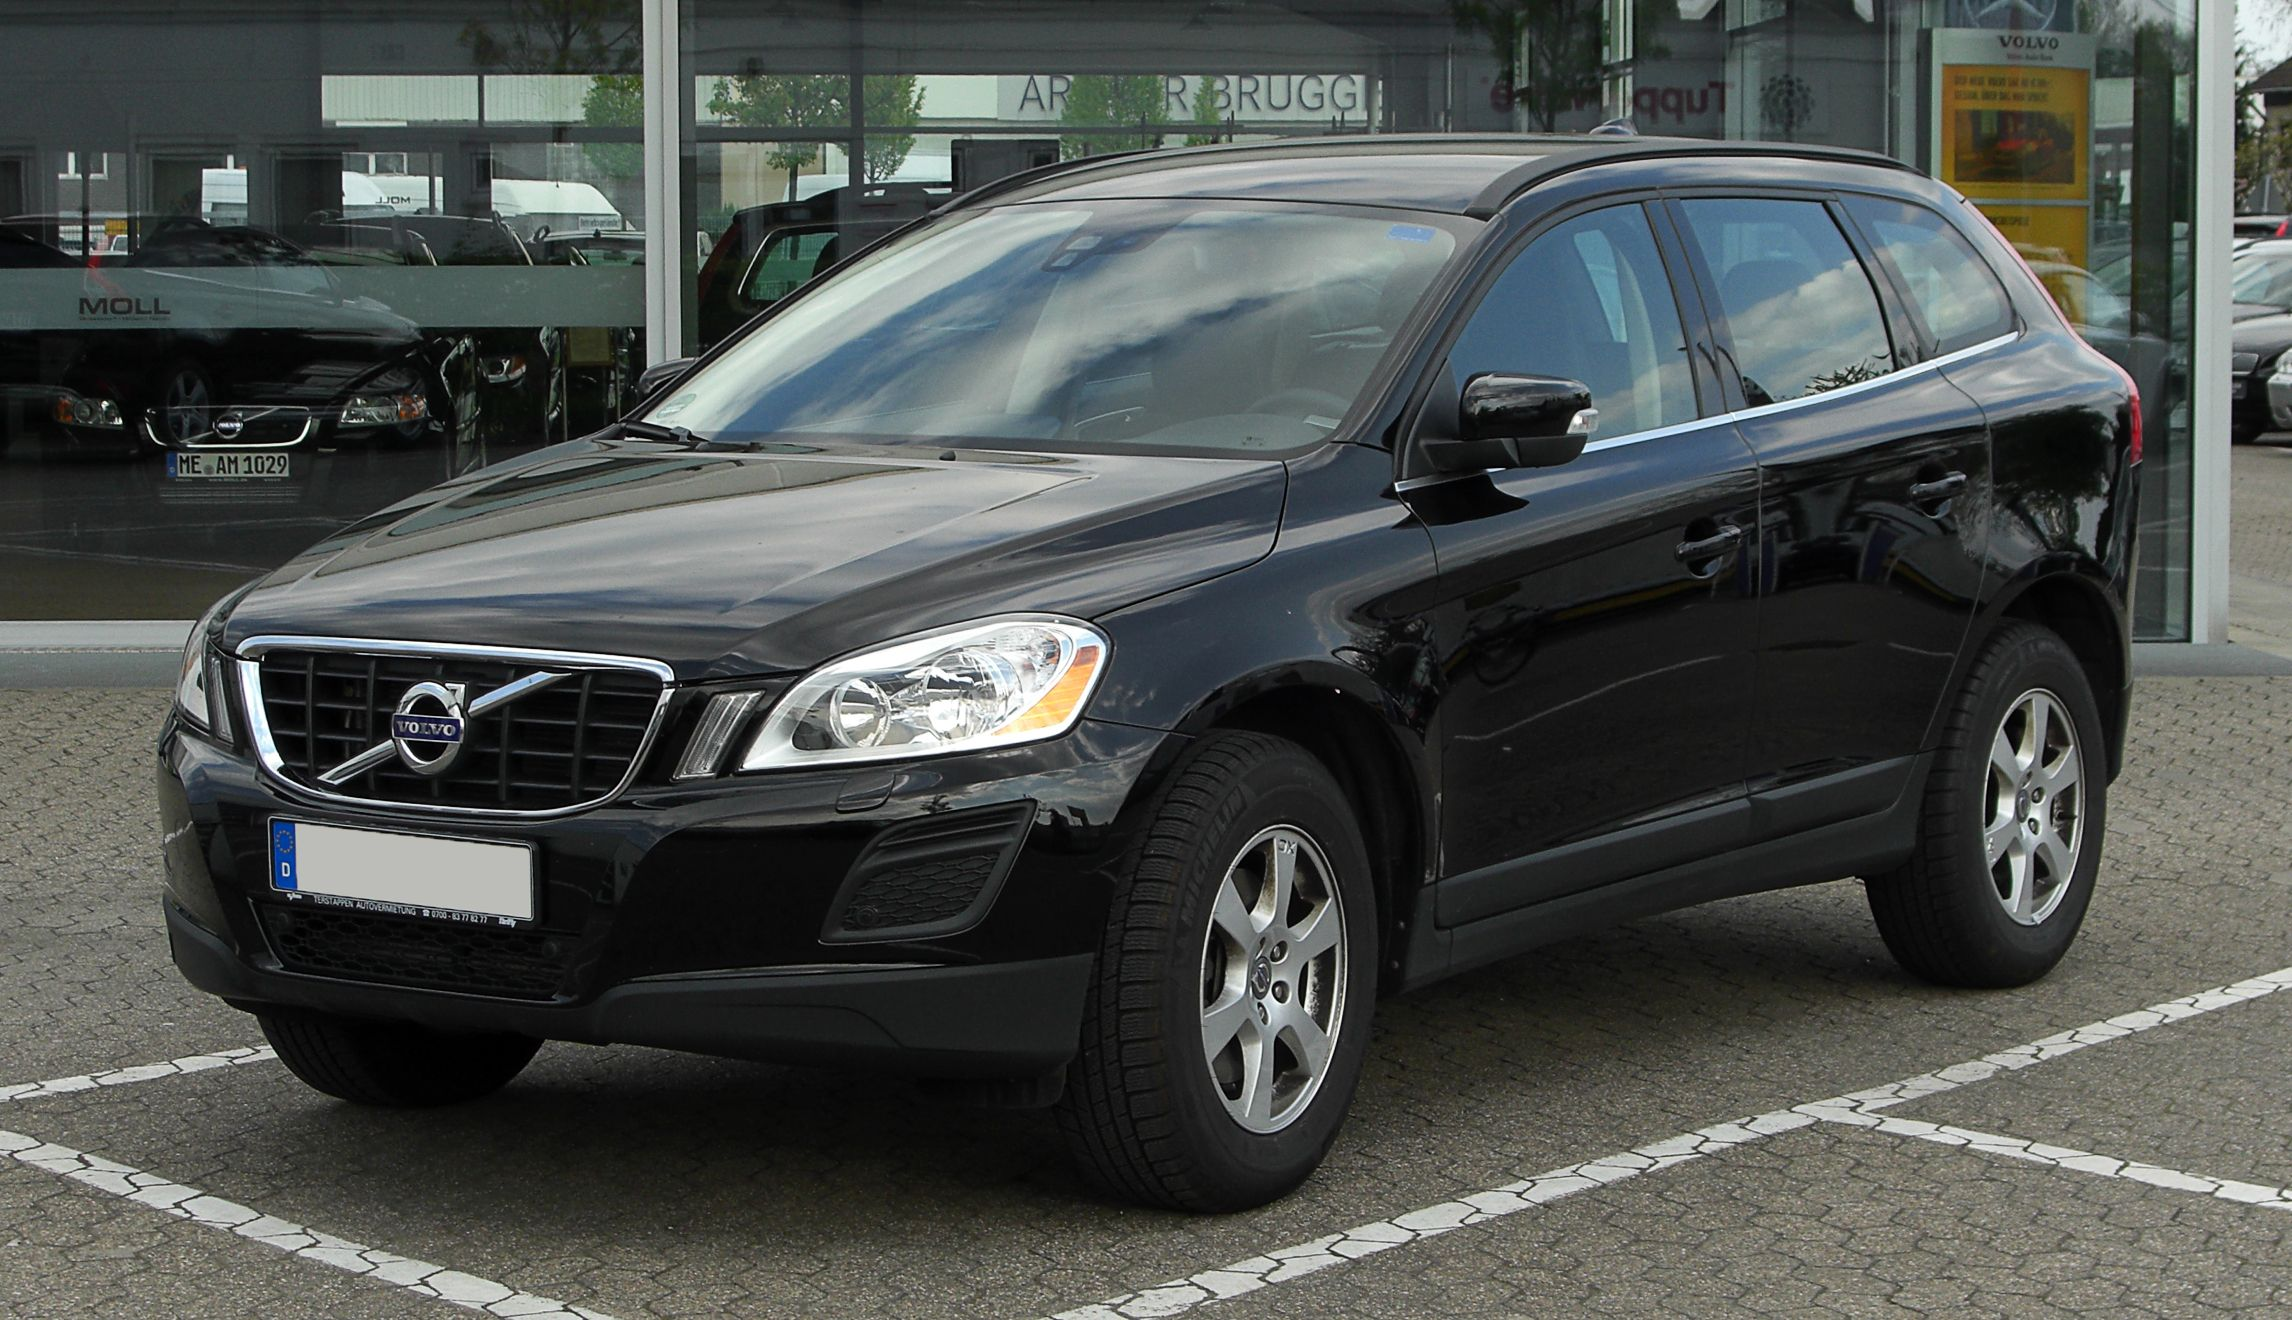 burning smell in the vents of the 2010 volvo xc60 fixit w a rh pinterest com 2010 Volvo XC60 Interior 2010 Volvo XC60 Interior